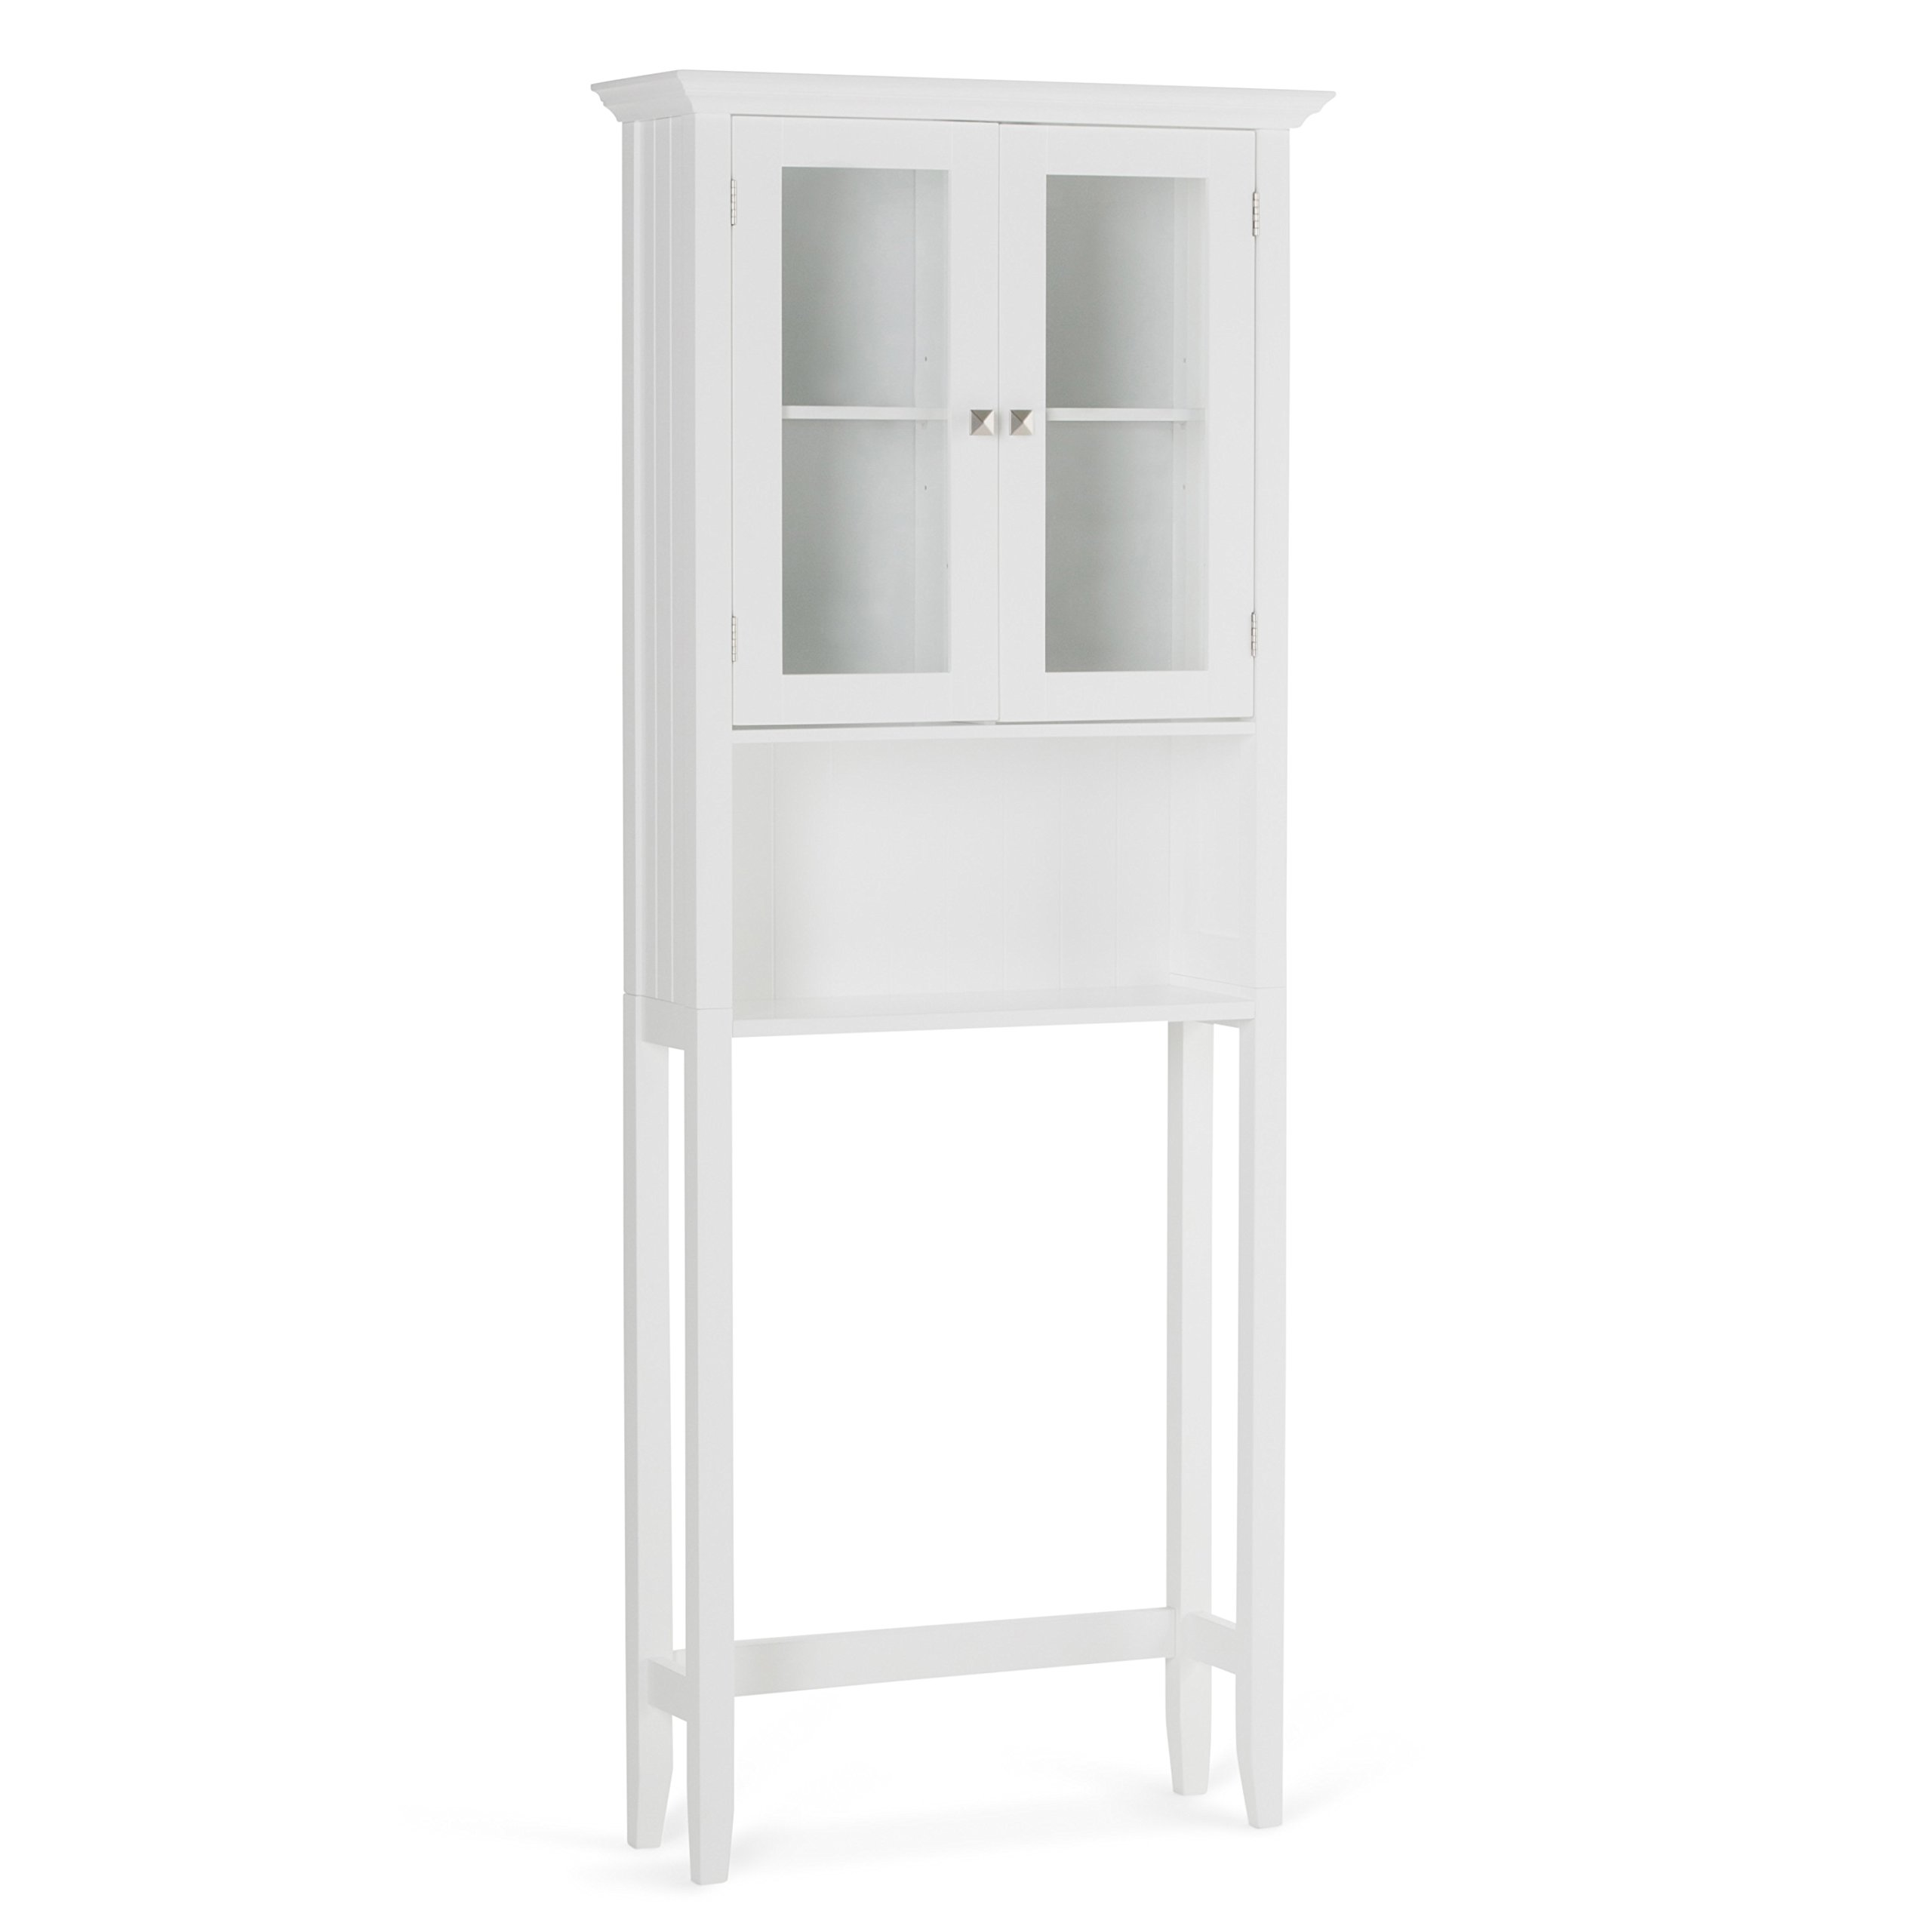 Simpli Home Acadian Space Saver Cabinet, White